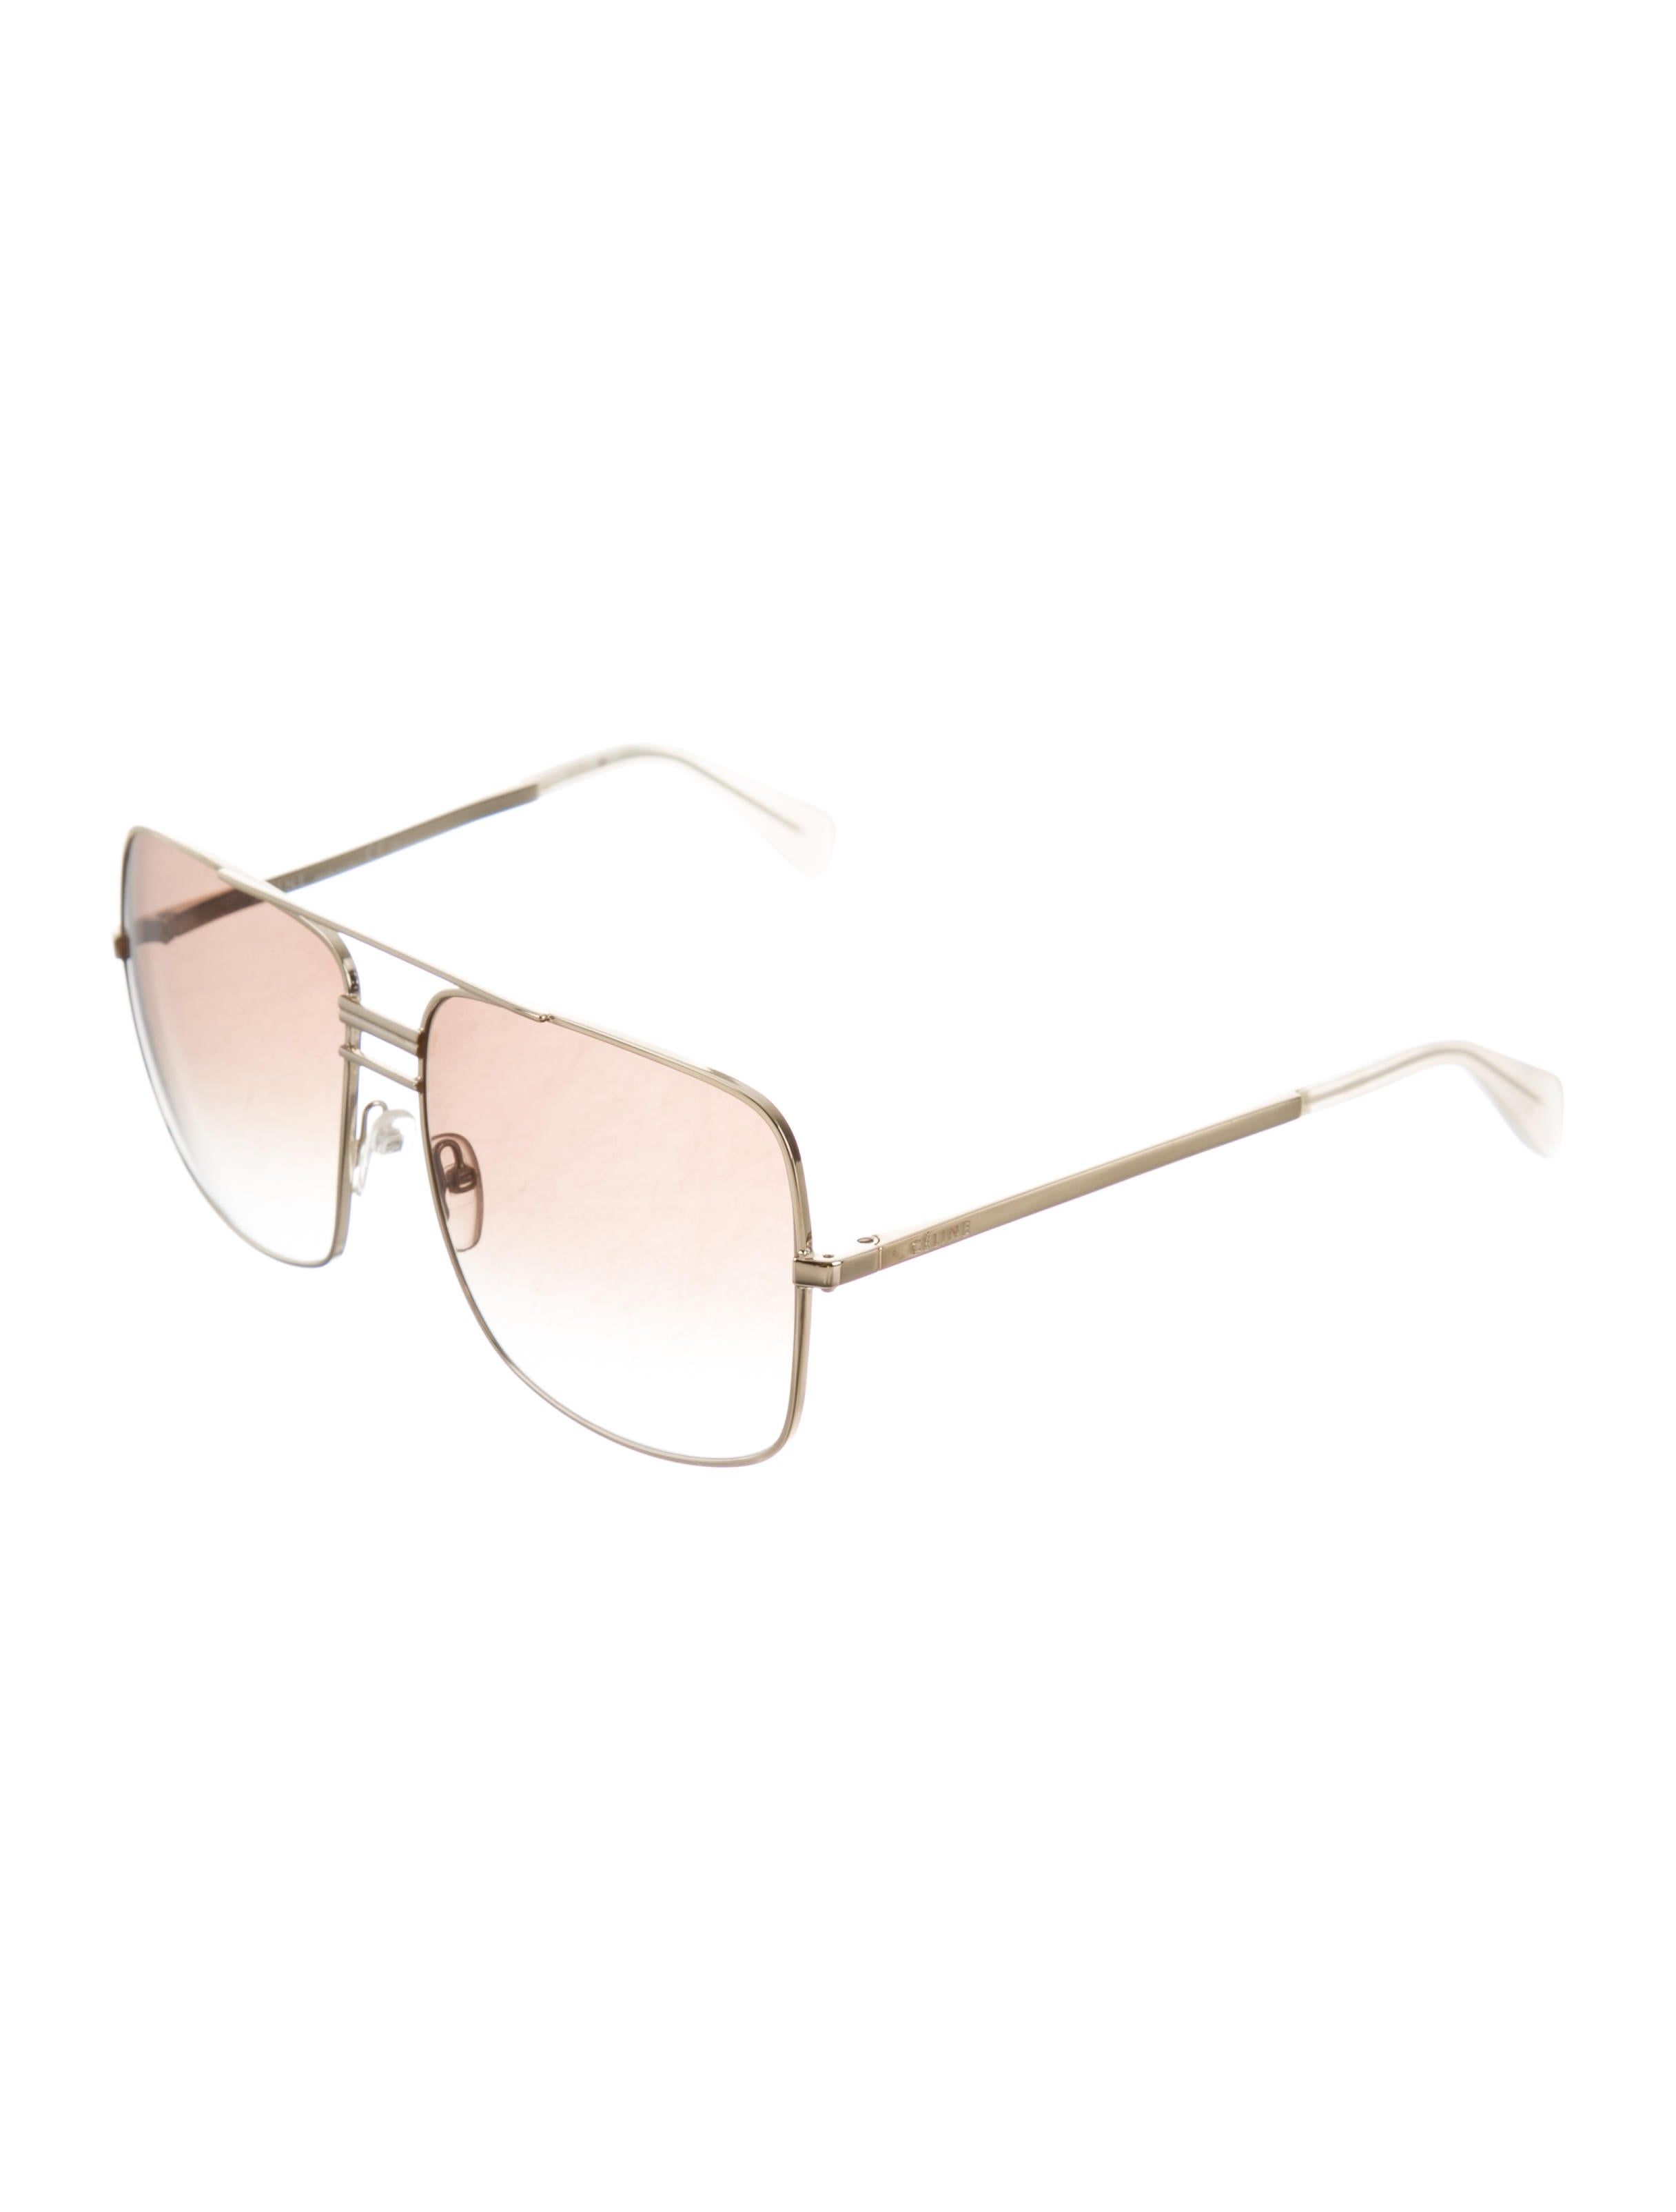 9a43668542 Céline Gradient Aviator Sunglasses - Accessories - CEL54469